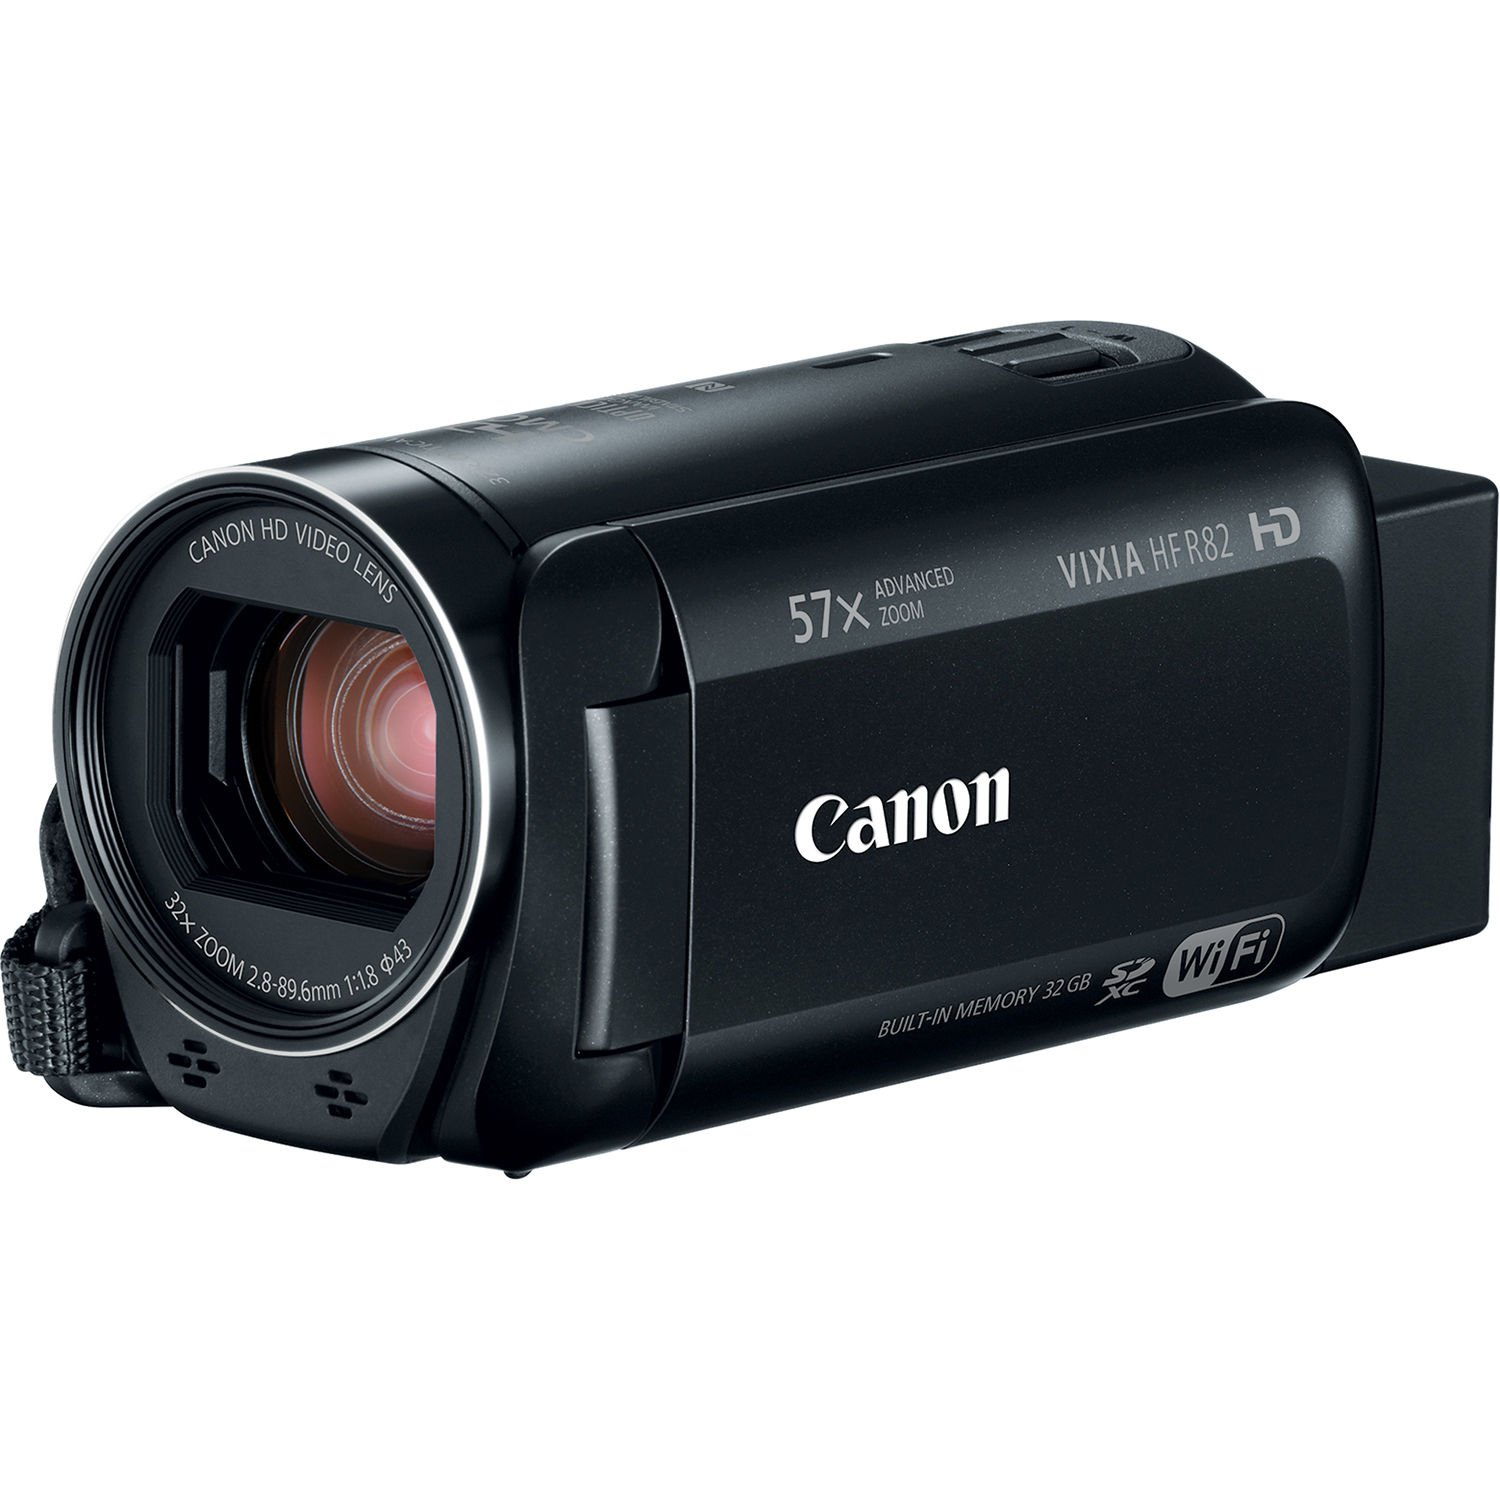 Canon VIXIA HF R82 Full HD Camcorder with 57x Advanced Zoom, 1080P Video, Built-In Wi-Fi/NFC, 3'' Touchscreen and DIGIC DV 4 Image Processor - Black (CERTIFIED REFURBISHED)